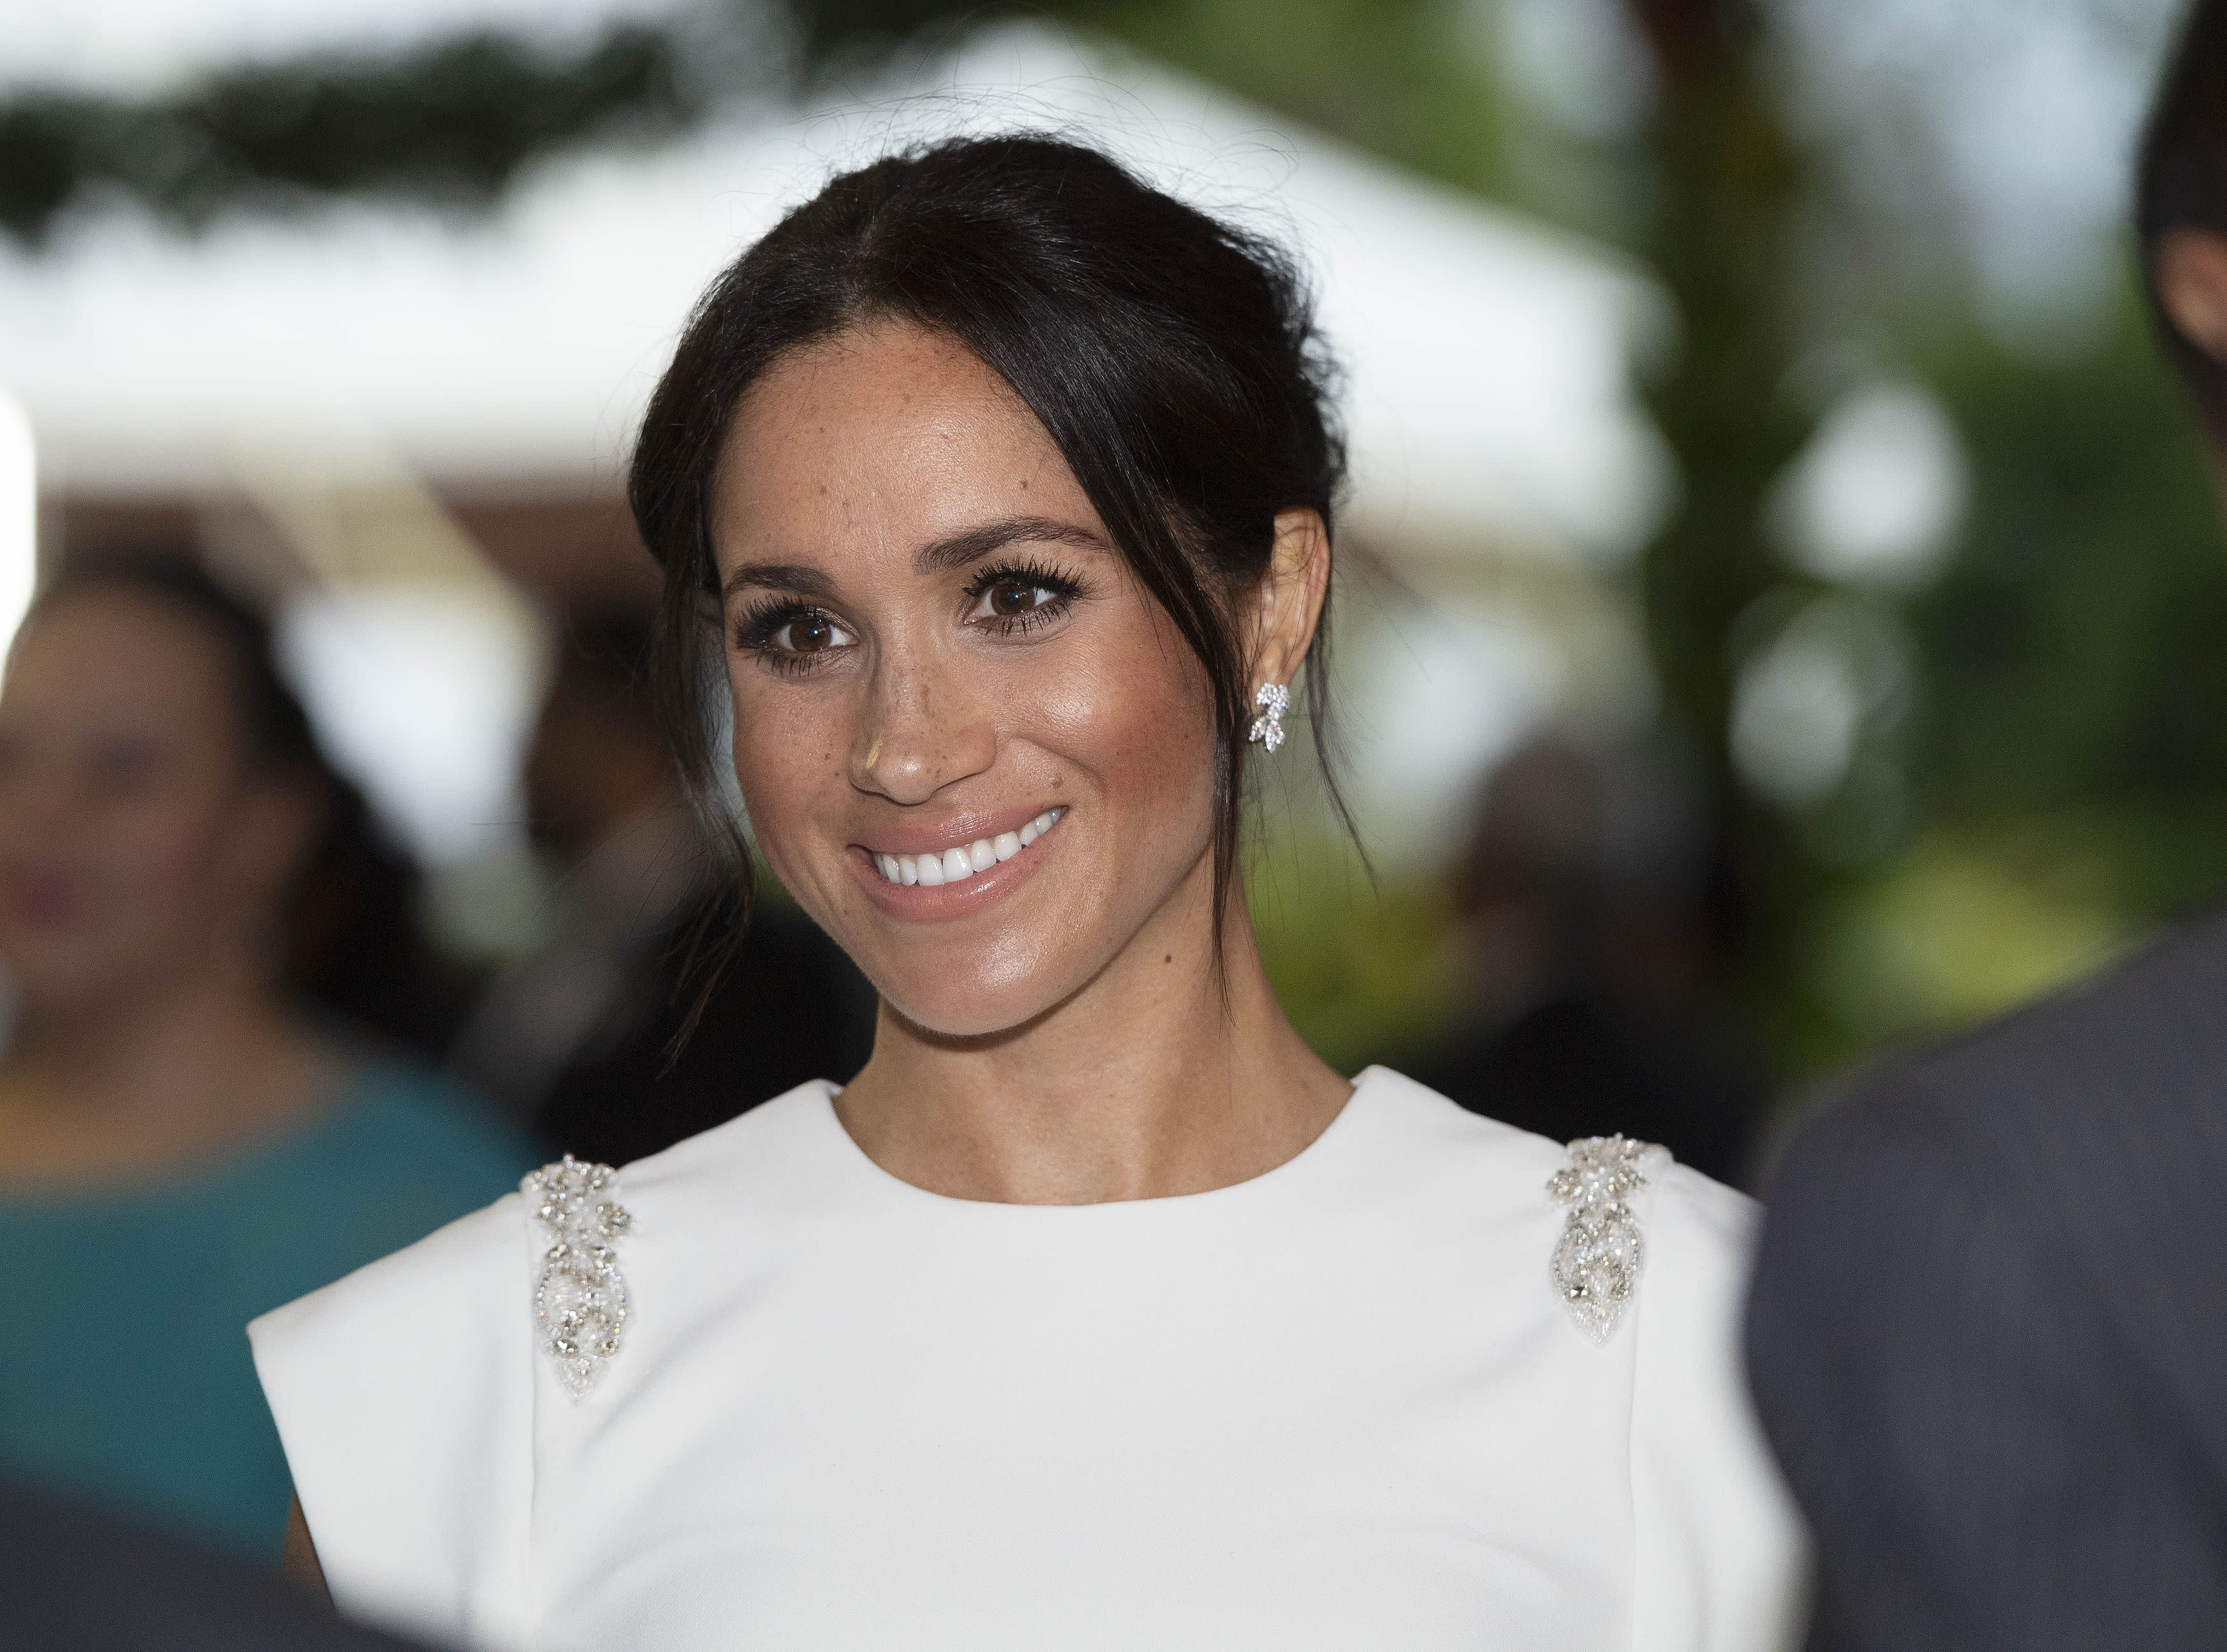 50th Hairstyle: Meghan Told To 'take Care' By Doctor